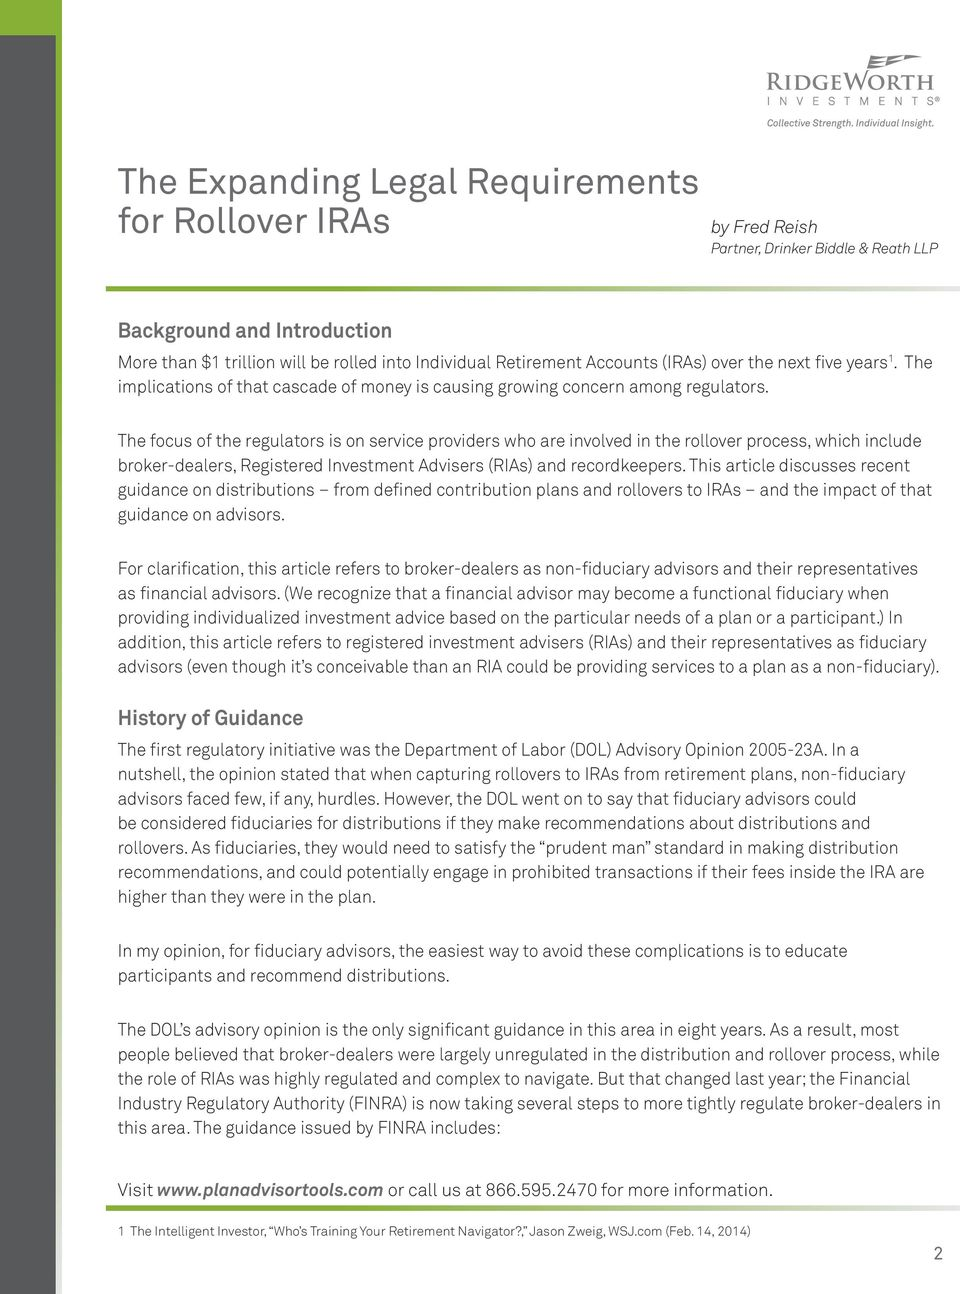 The focus of the regulators is on service providers who are involved in the rollover process, which include broker-dealers, Registered Investment Advisers (RIAs) and recordkeepers.